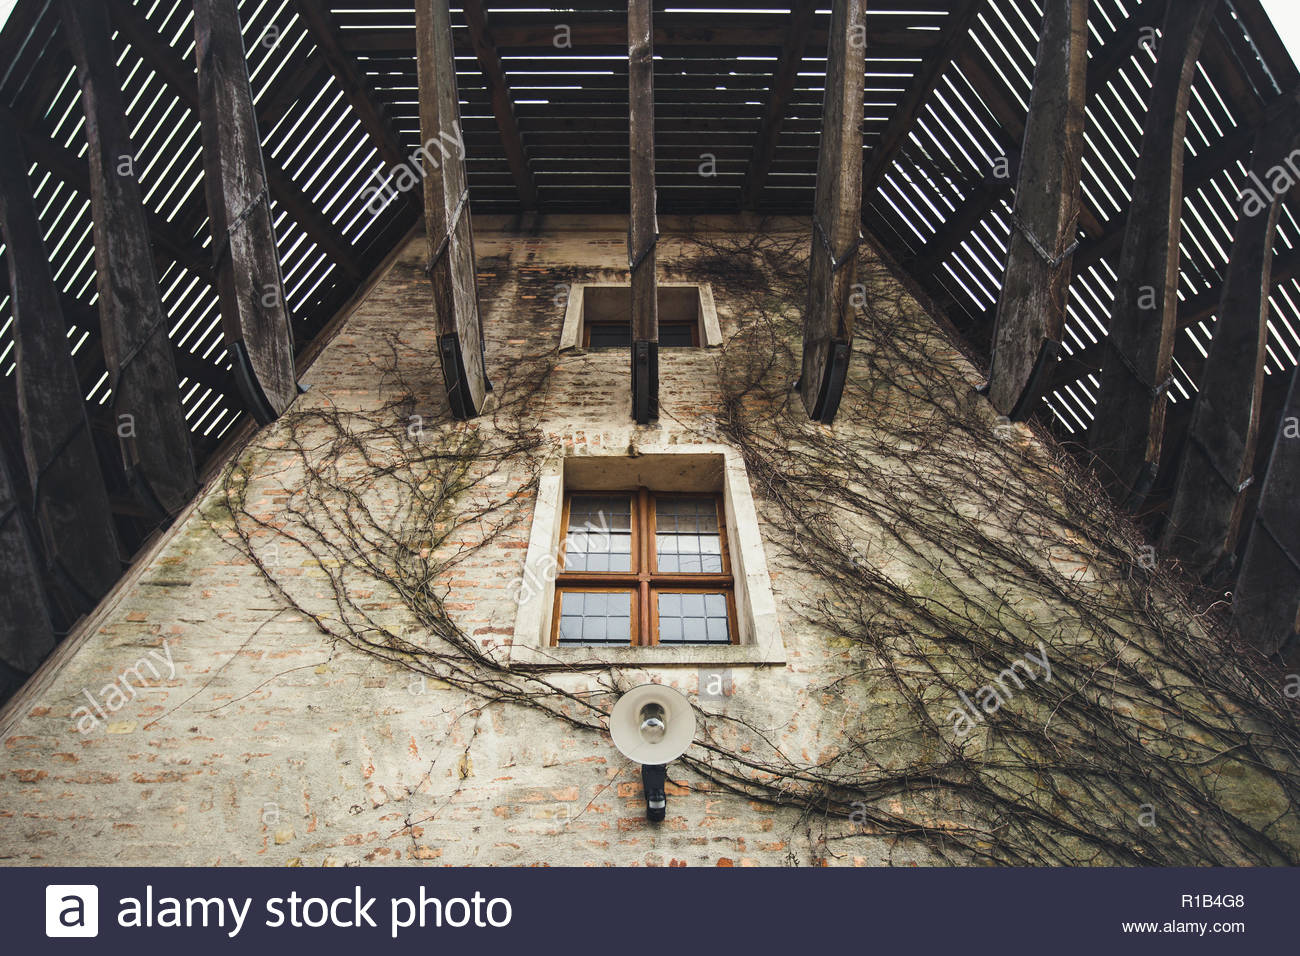 Old wooden windmill in Potsdam - Stock Image